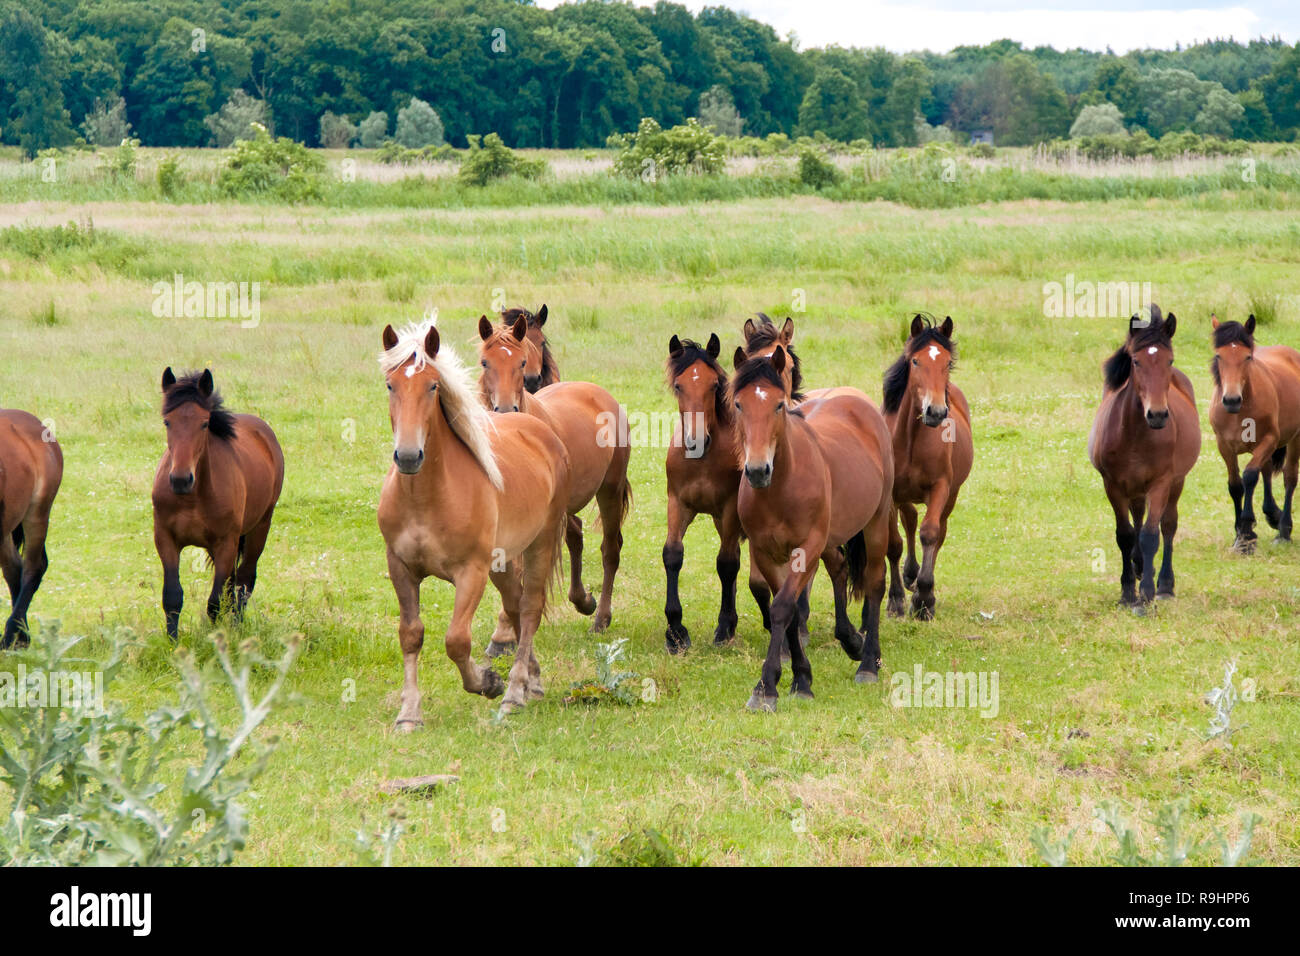 Free running wild horses on a meadow. Country midlands landscape with group of animals. - Stock Image